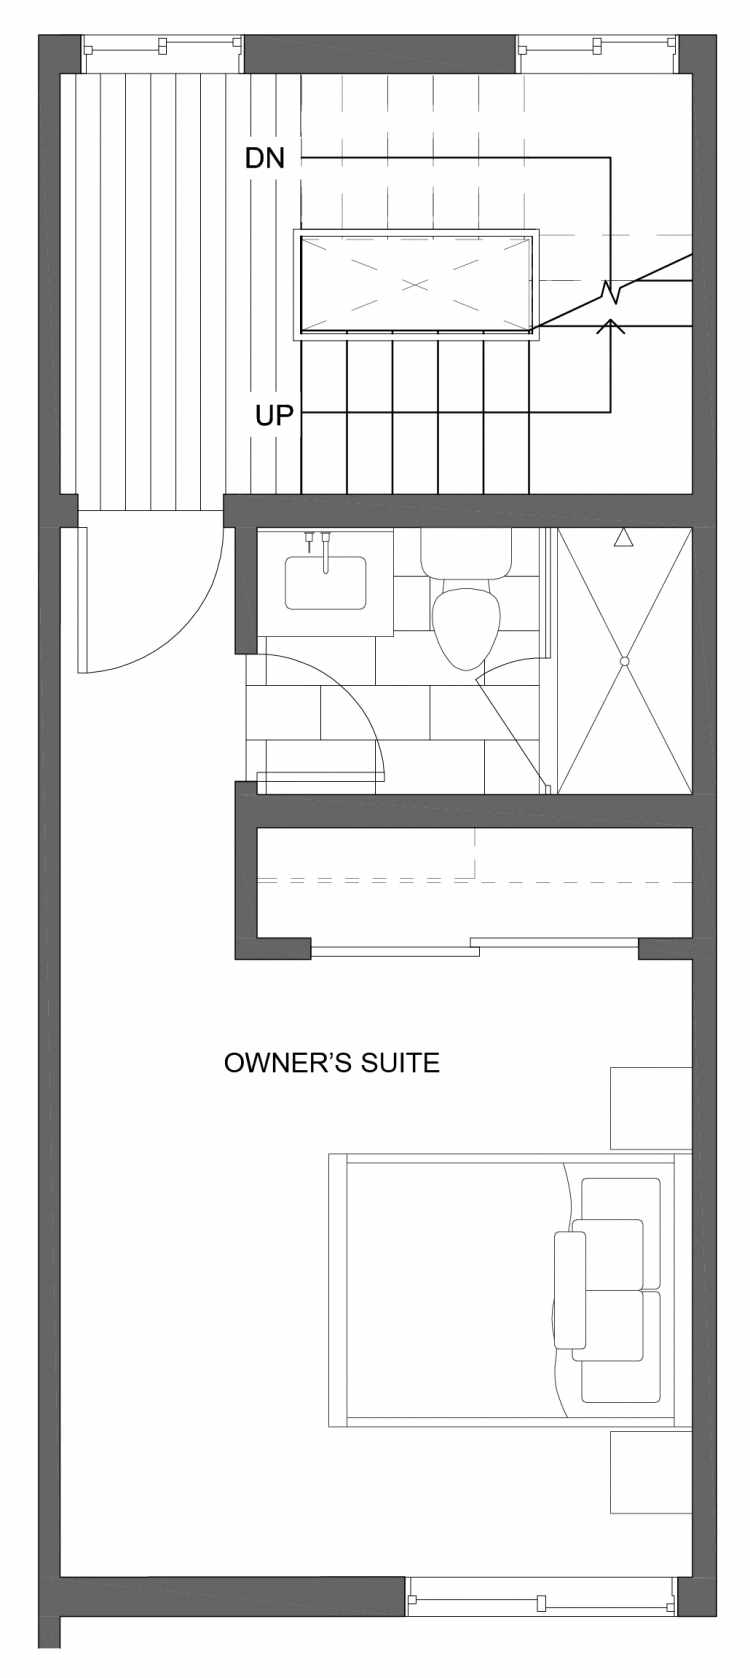 Third Floor Plan of 10429E Alderbrook Pl NW, One of the Jasmine Townhomes in the Greenwood Neighborhood of Seattle